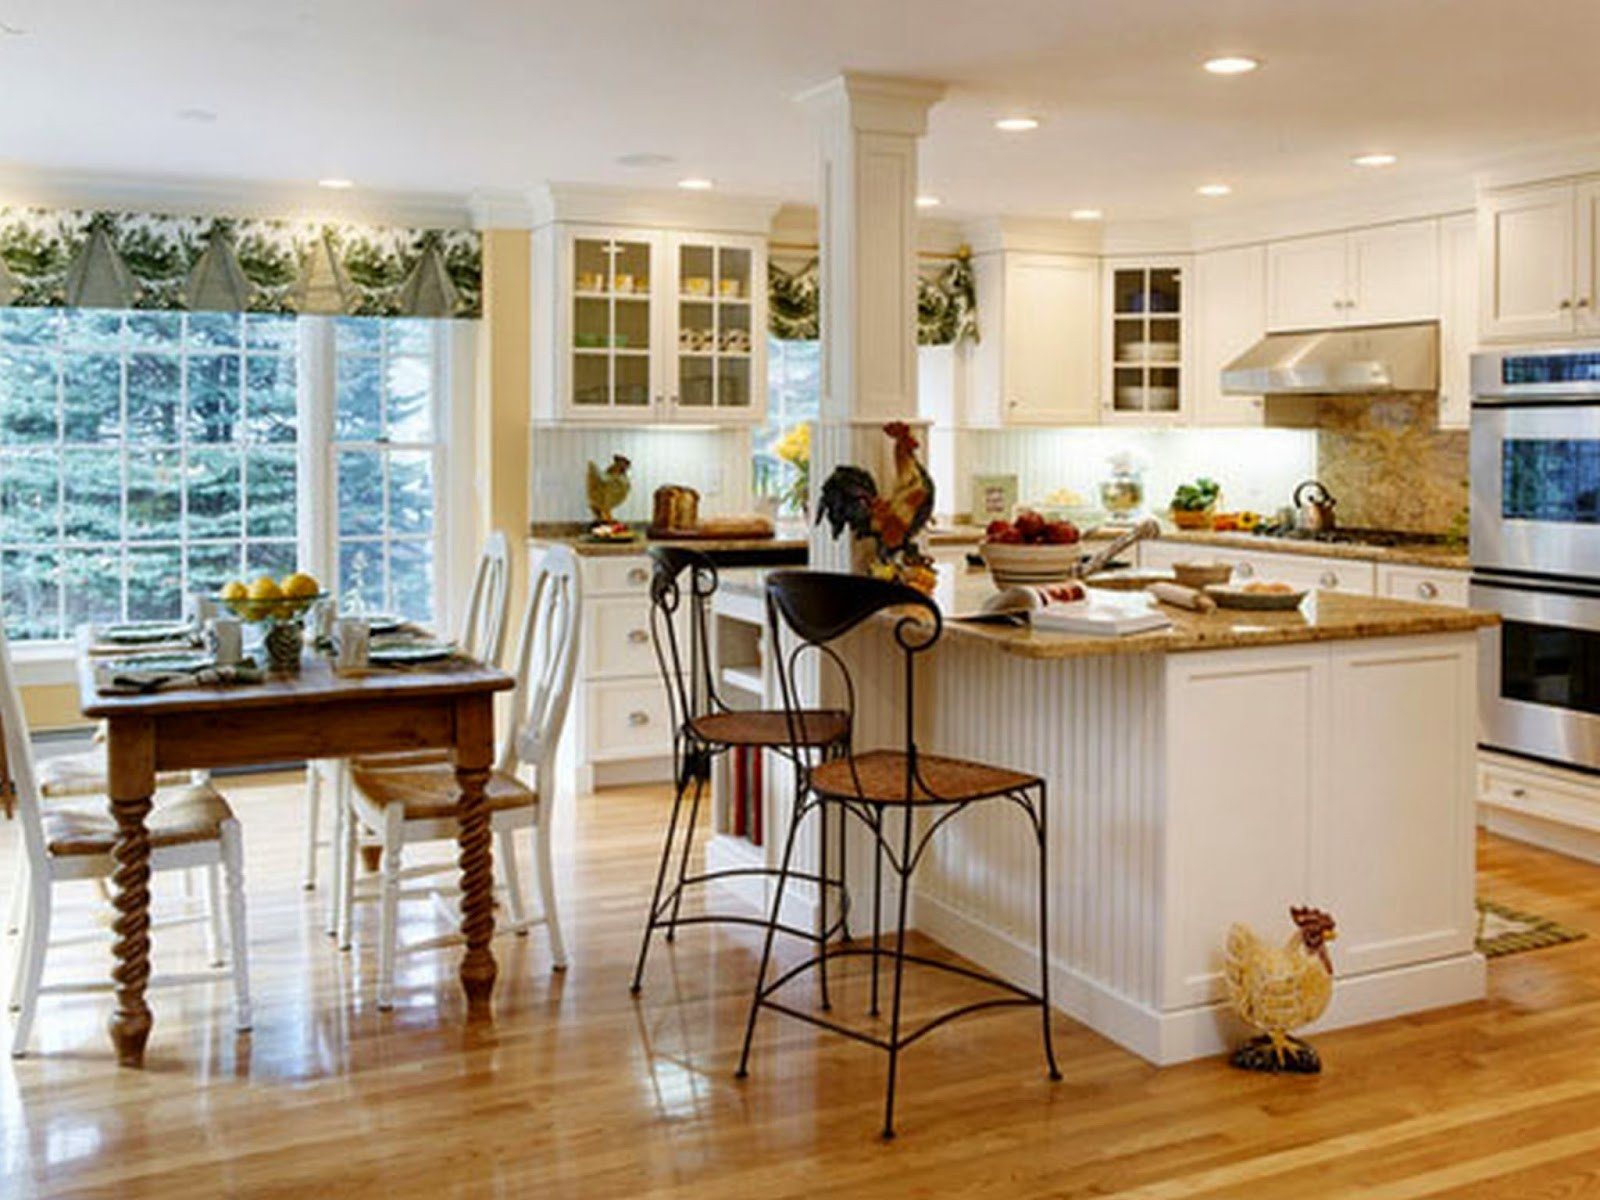 Kitchen Wall Decorating Ideas to Level Up Your Kitchen Performance Best DIY Tips Gardening